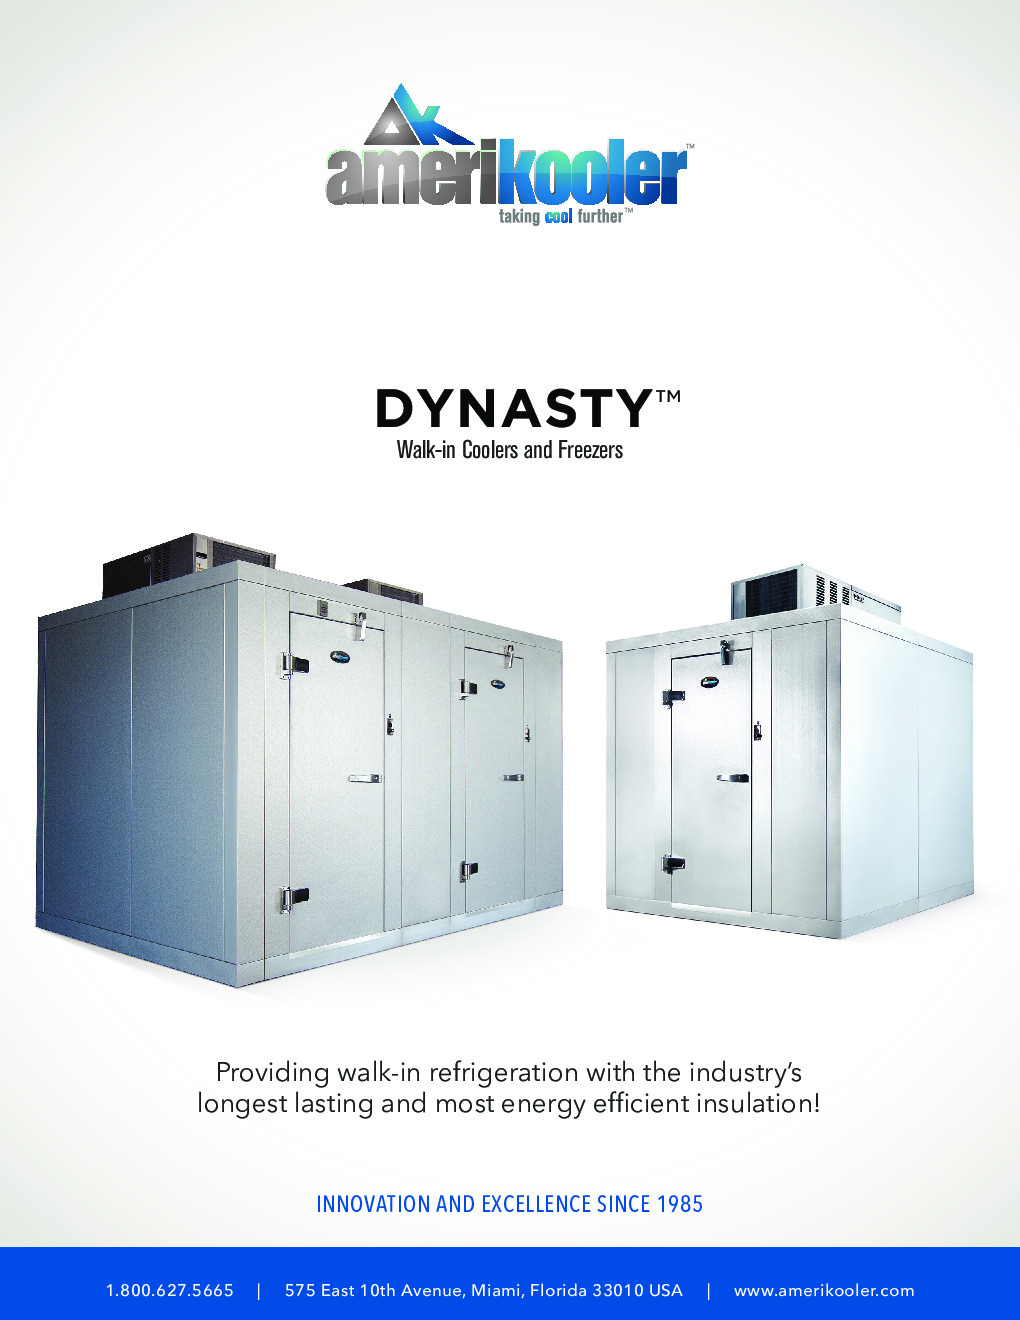 AmeriKooler DW092077N-7/13 Indoor 9' X 20' Walk-In, 13' L Cooler without Floor and 7' L Freezer, Box Only